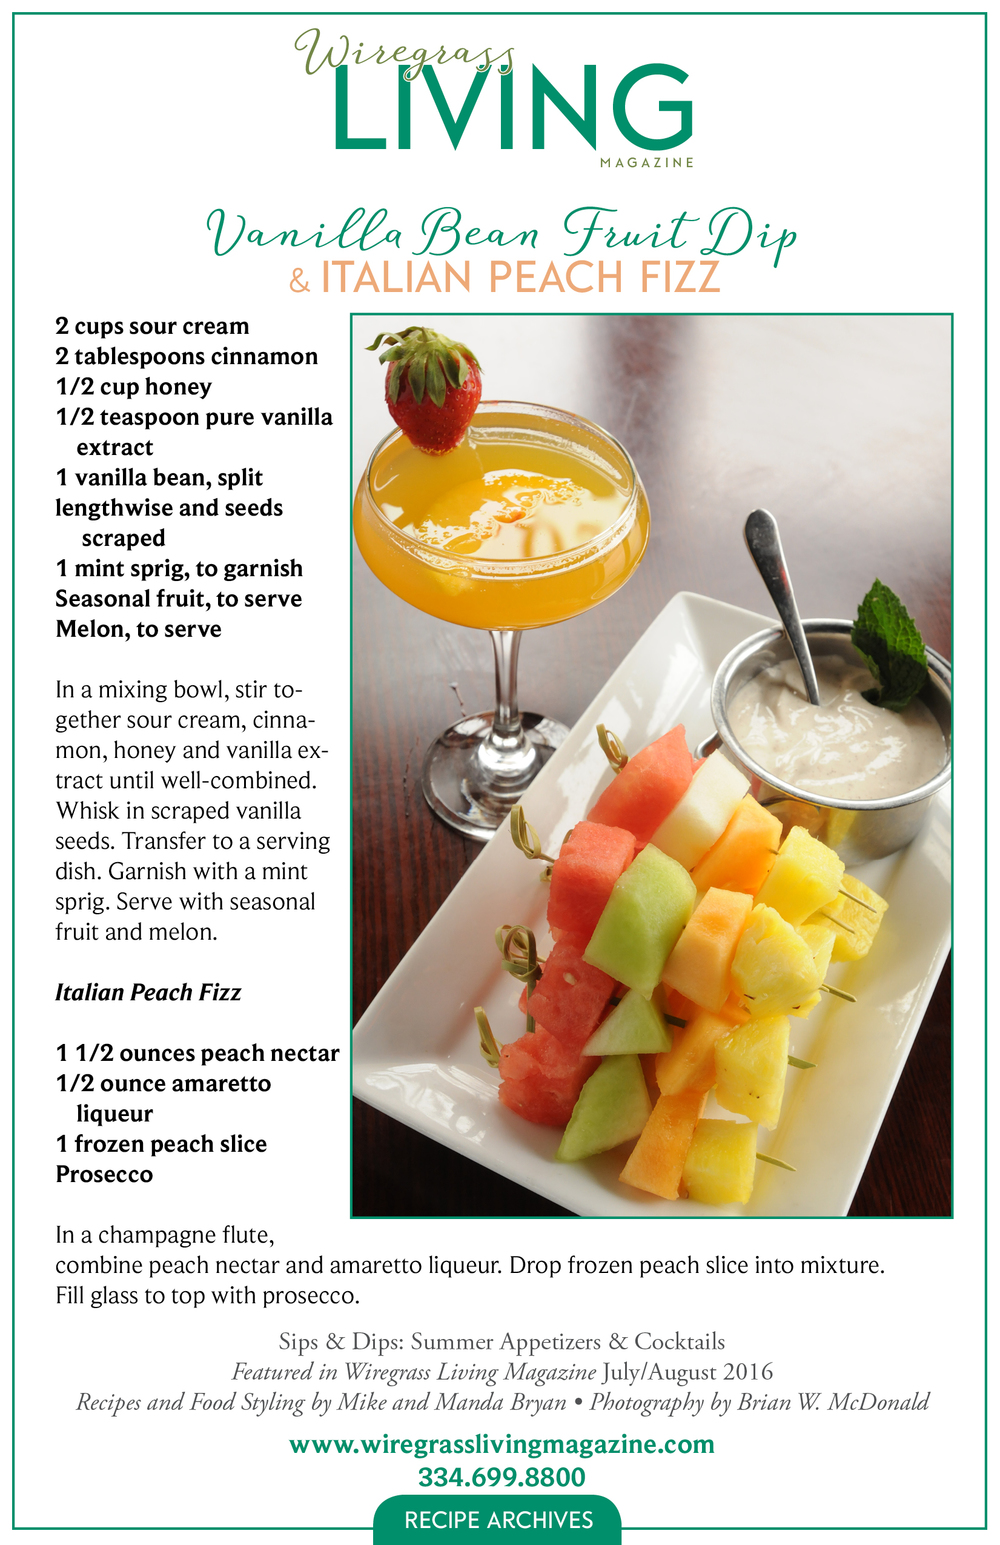 Vanilla Bean Fruit Dip, Wiregrass Living Magazine